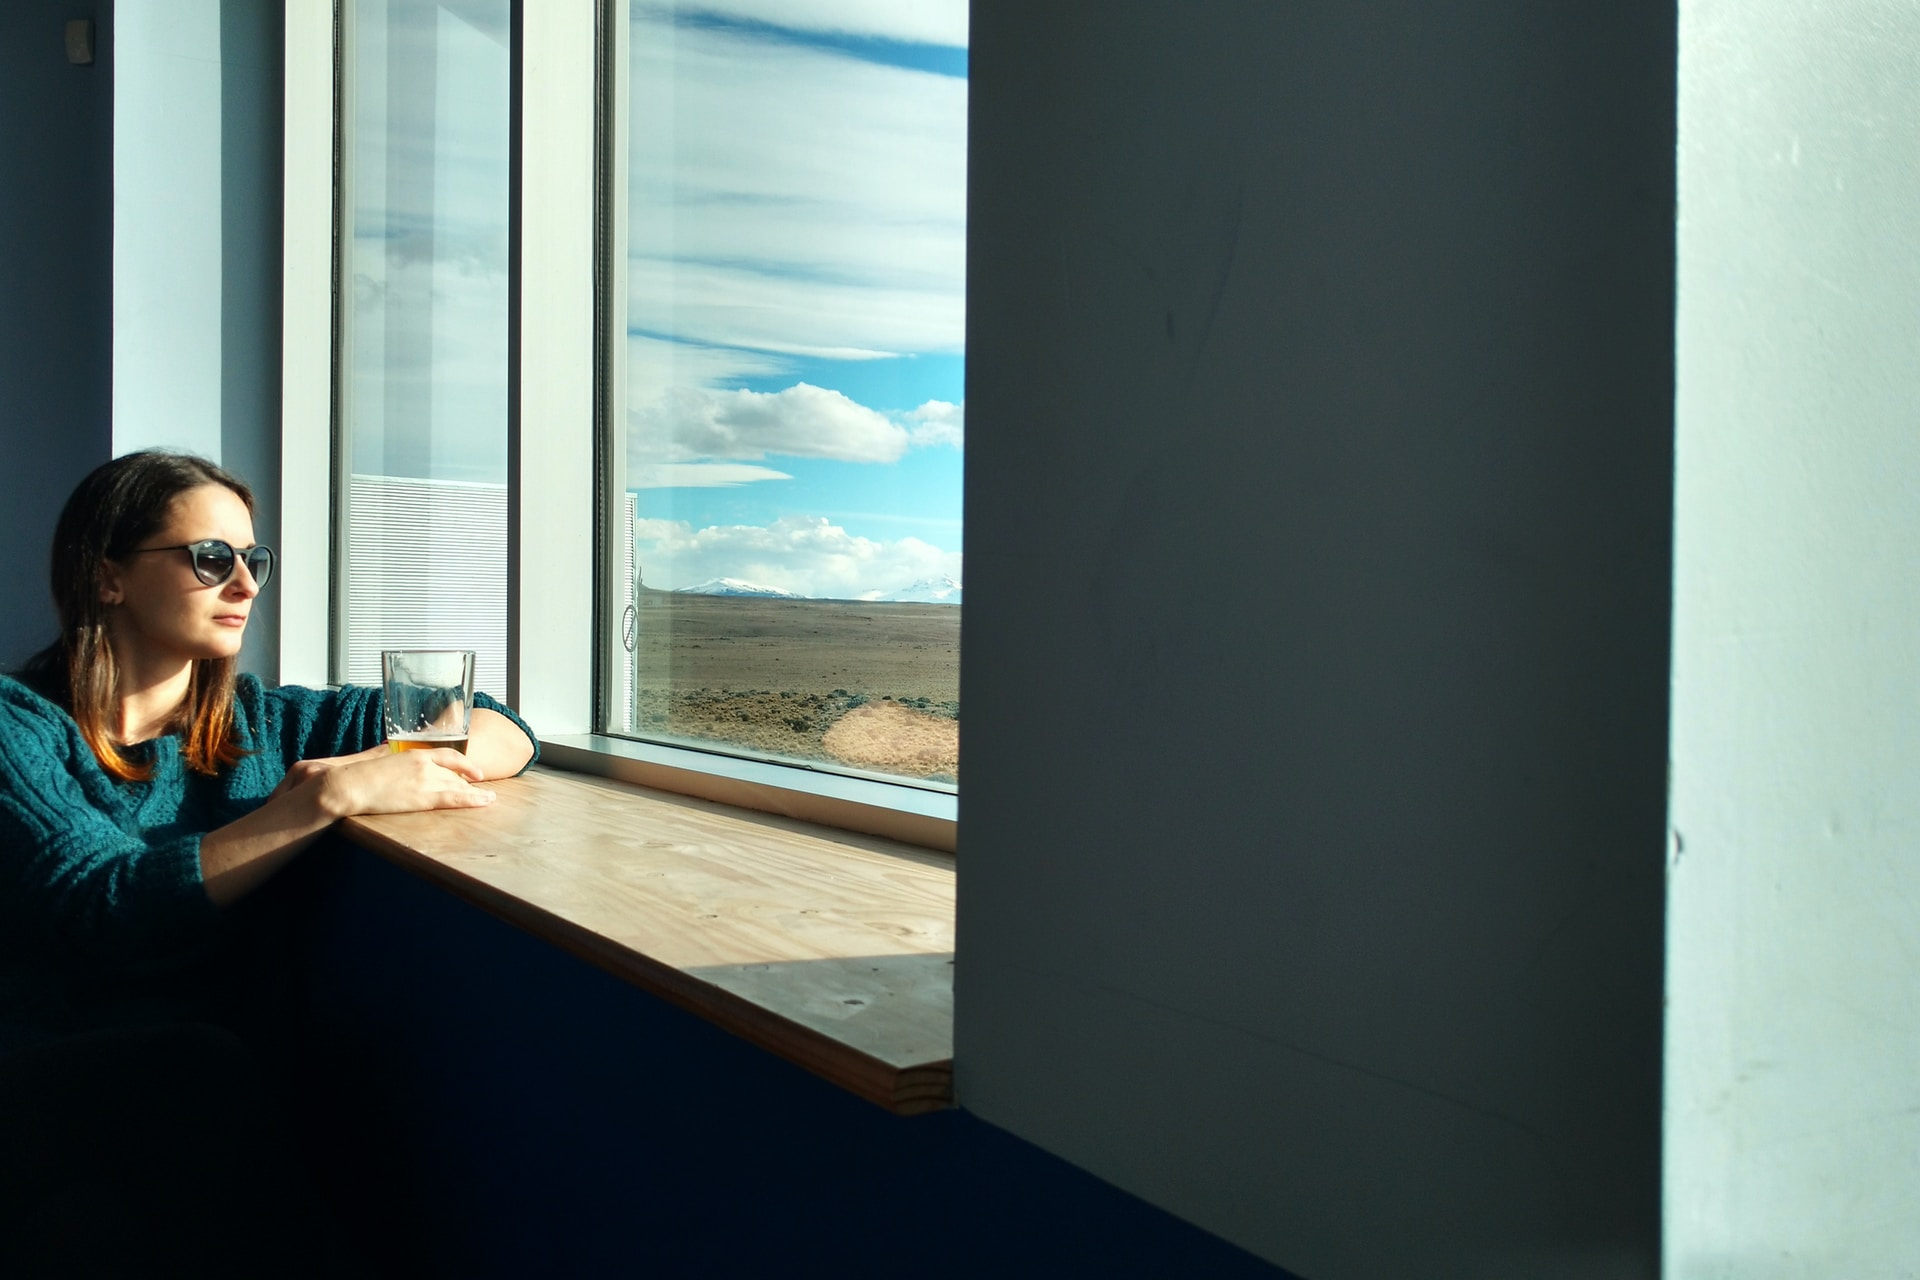 woman sitting beside window while looking outside